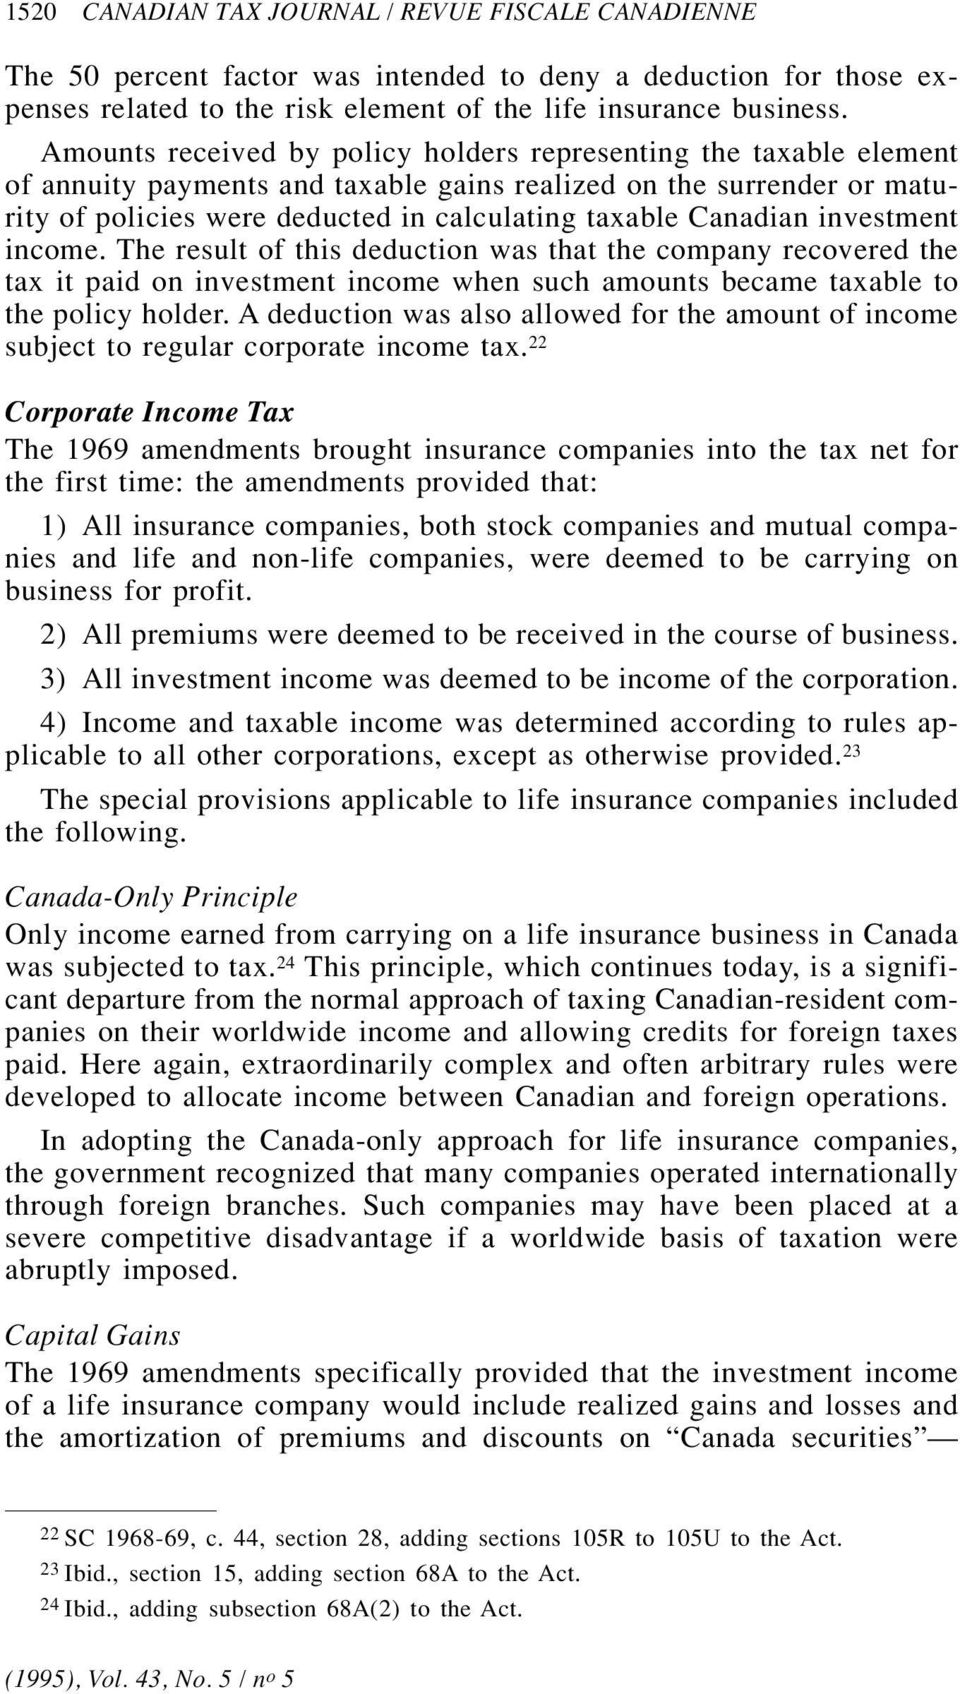 Canadian investment income. The result of this deduction was that the company recovered the tax it paid on investment income when such amounts became taxable to the policy holder.